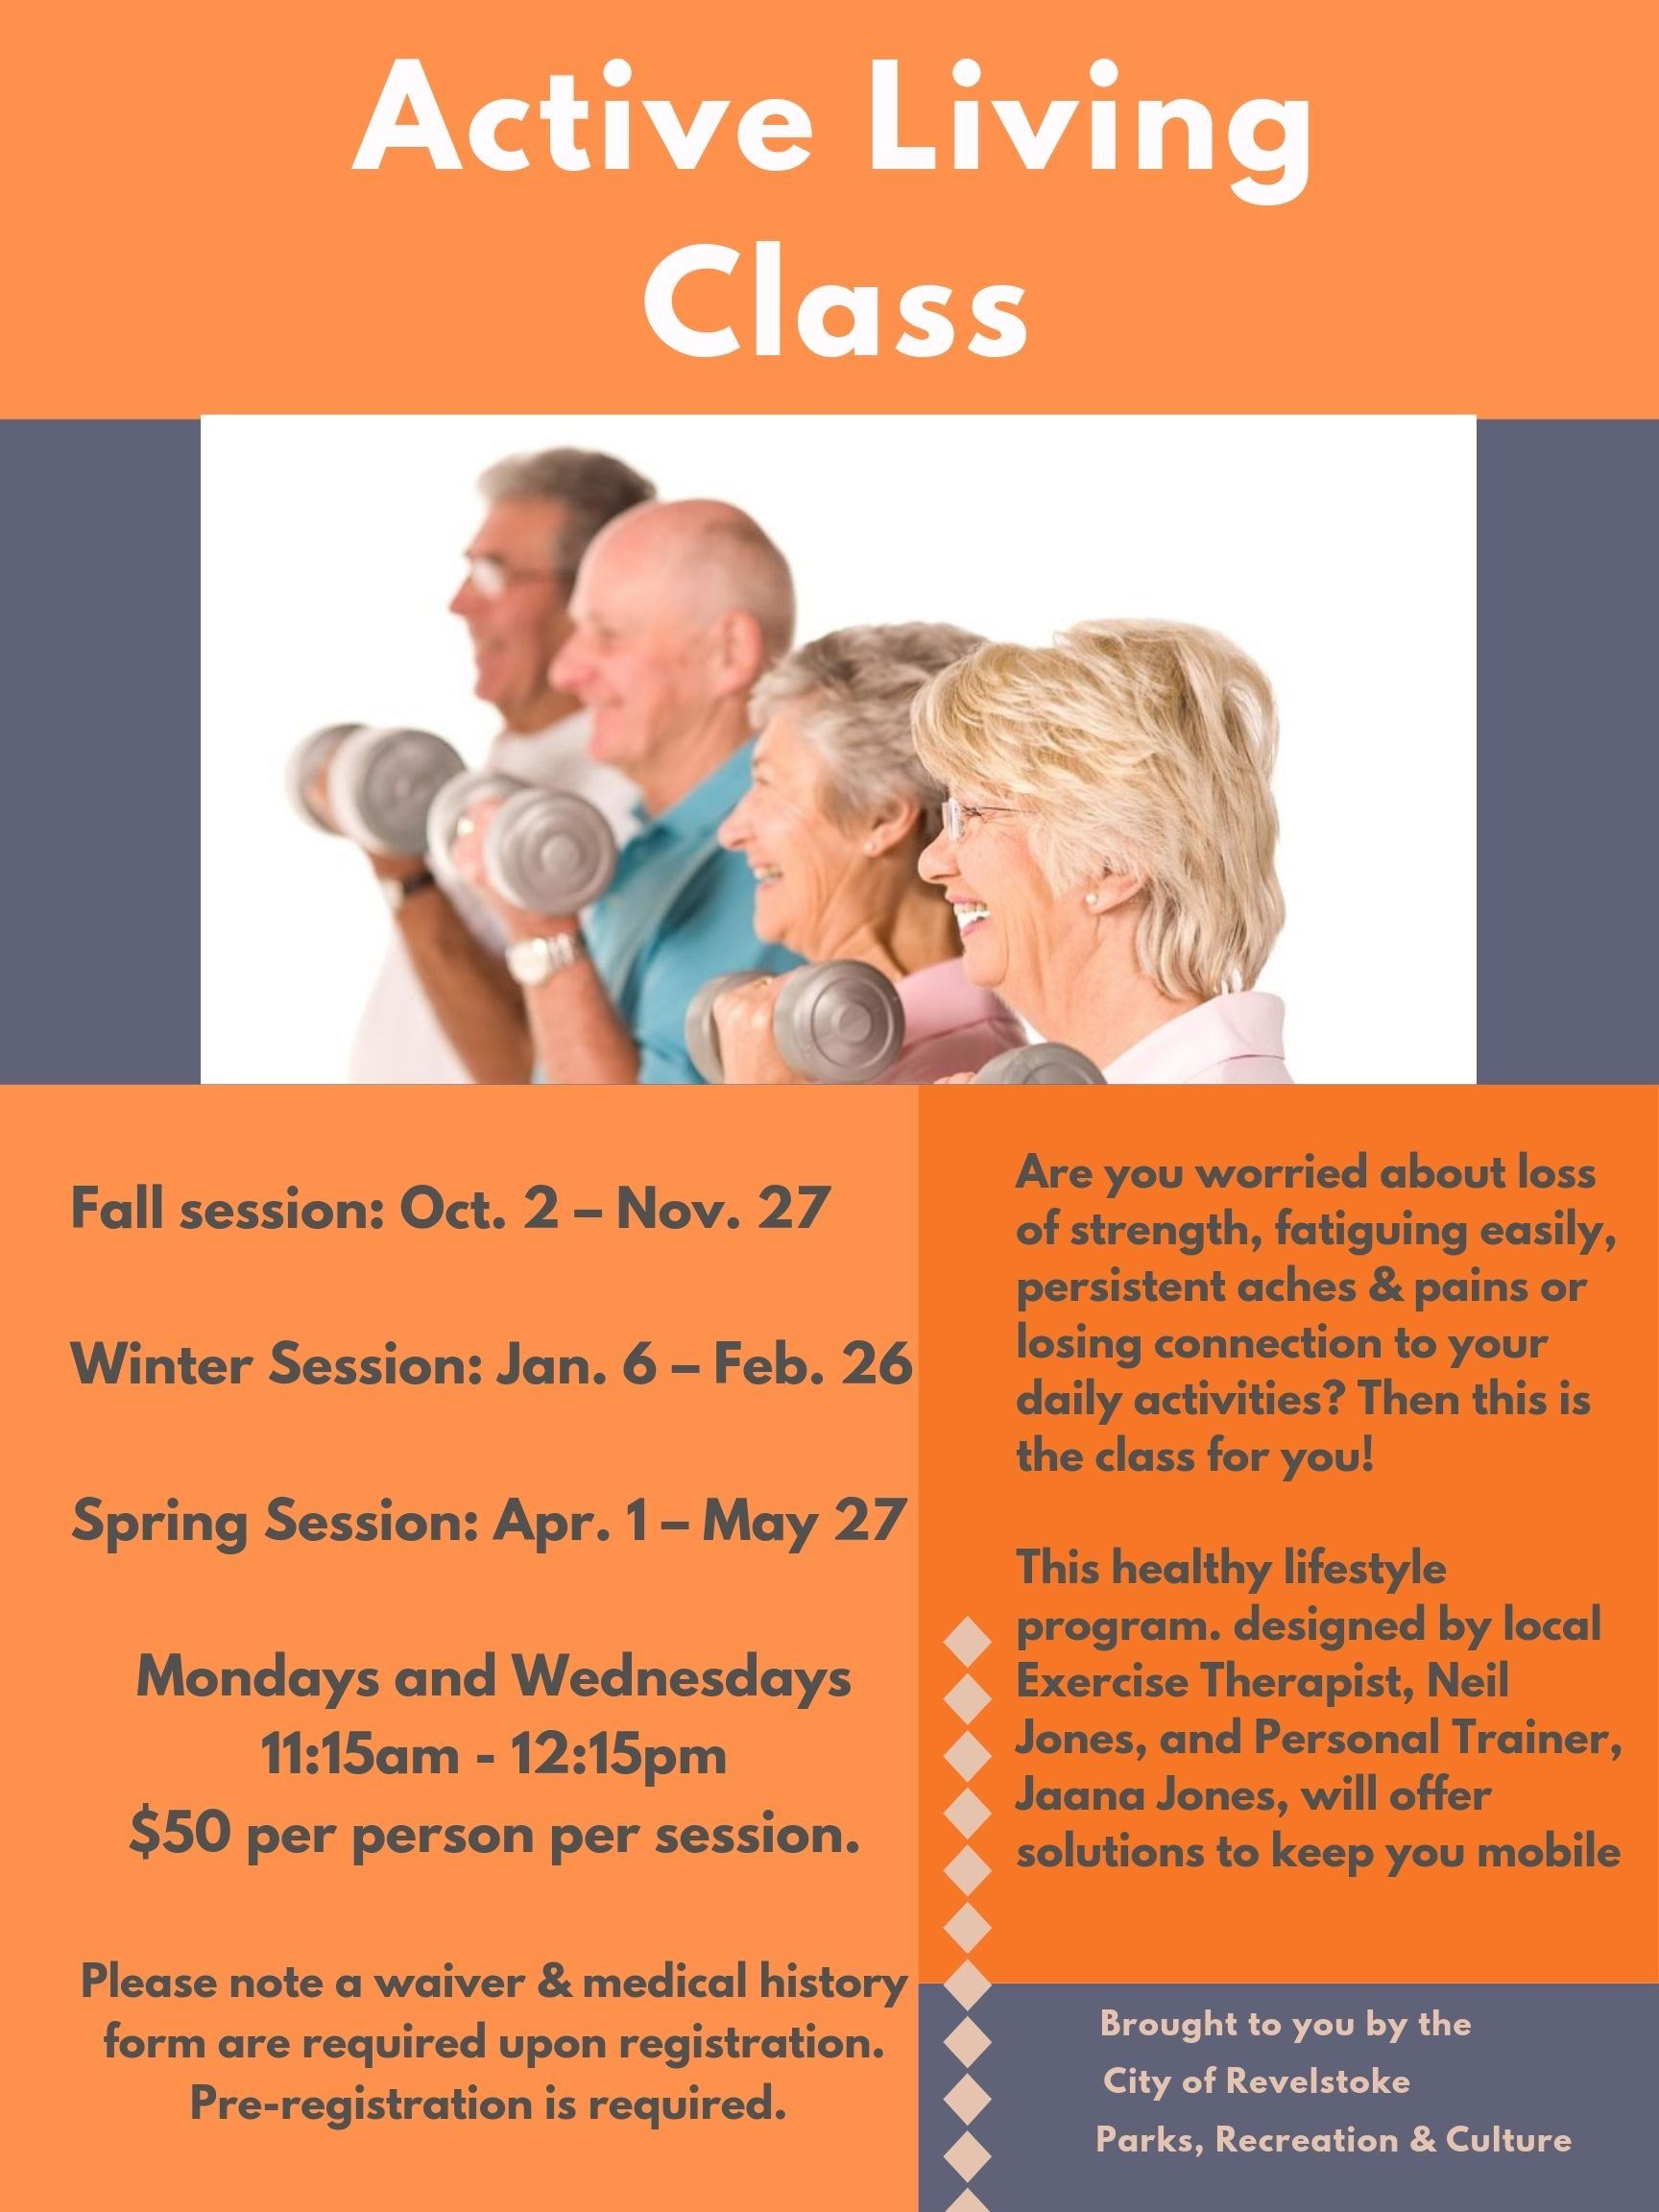 ACTIVE LIVING CLASS